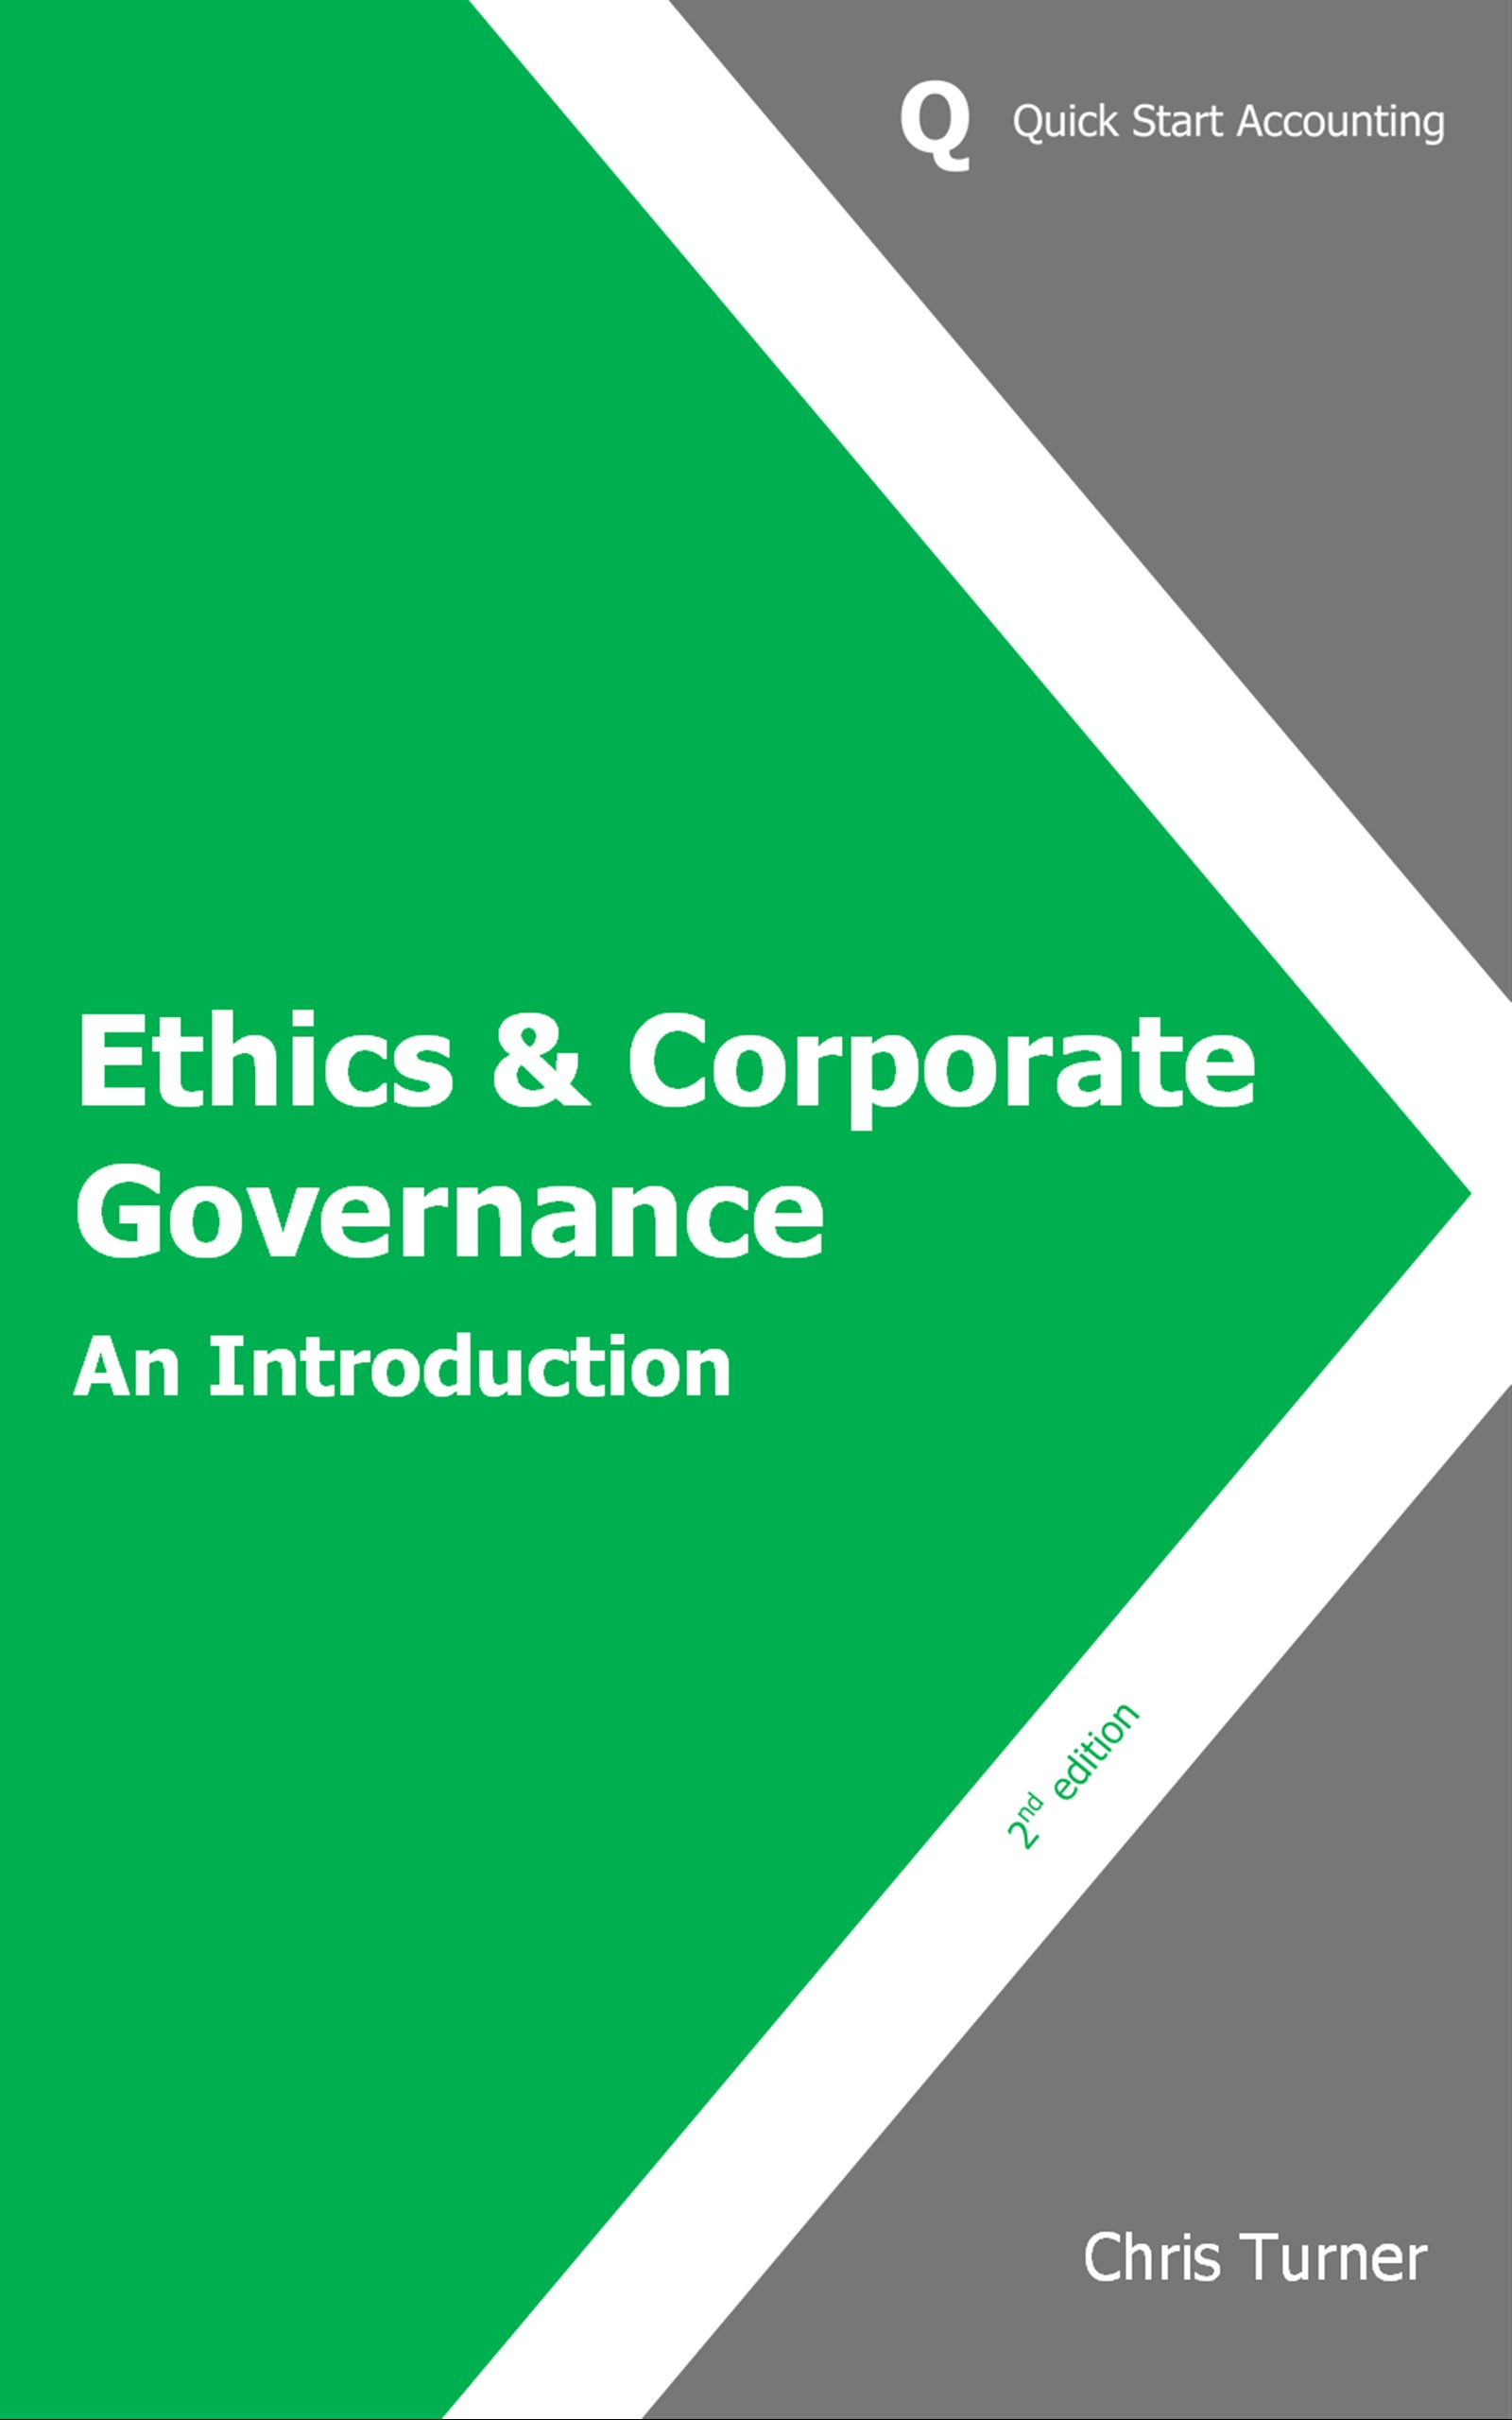 Ethics & Corporate Governance: An Introduction book cover